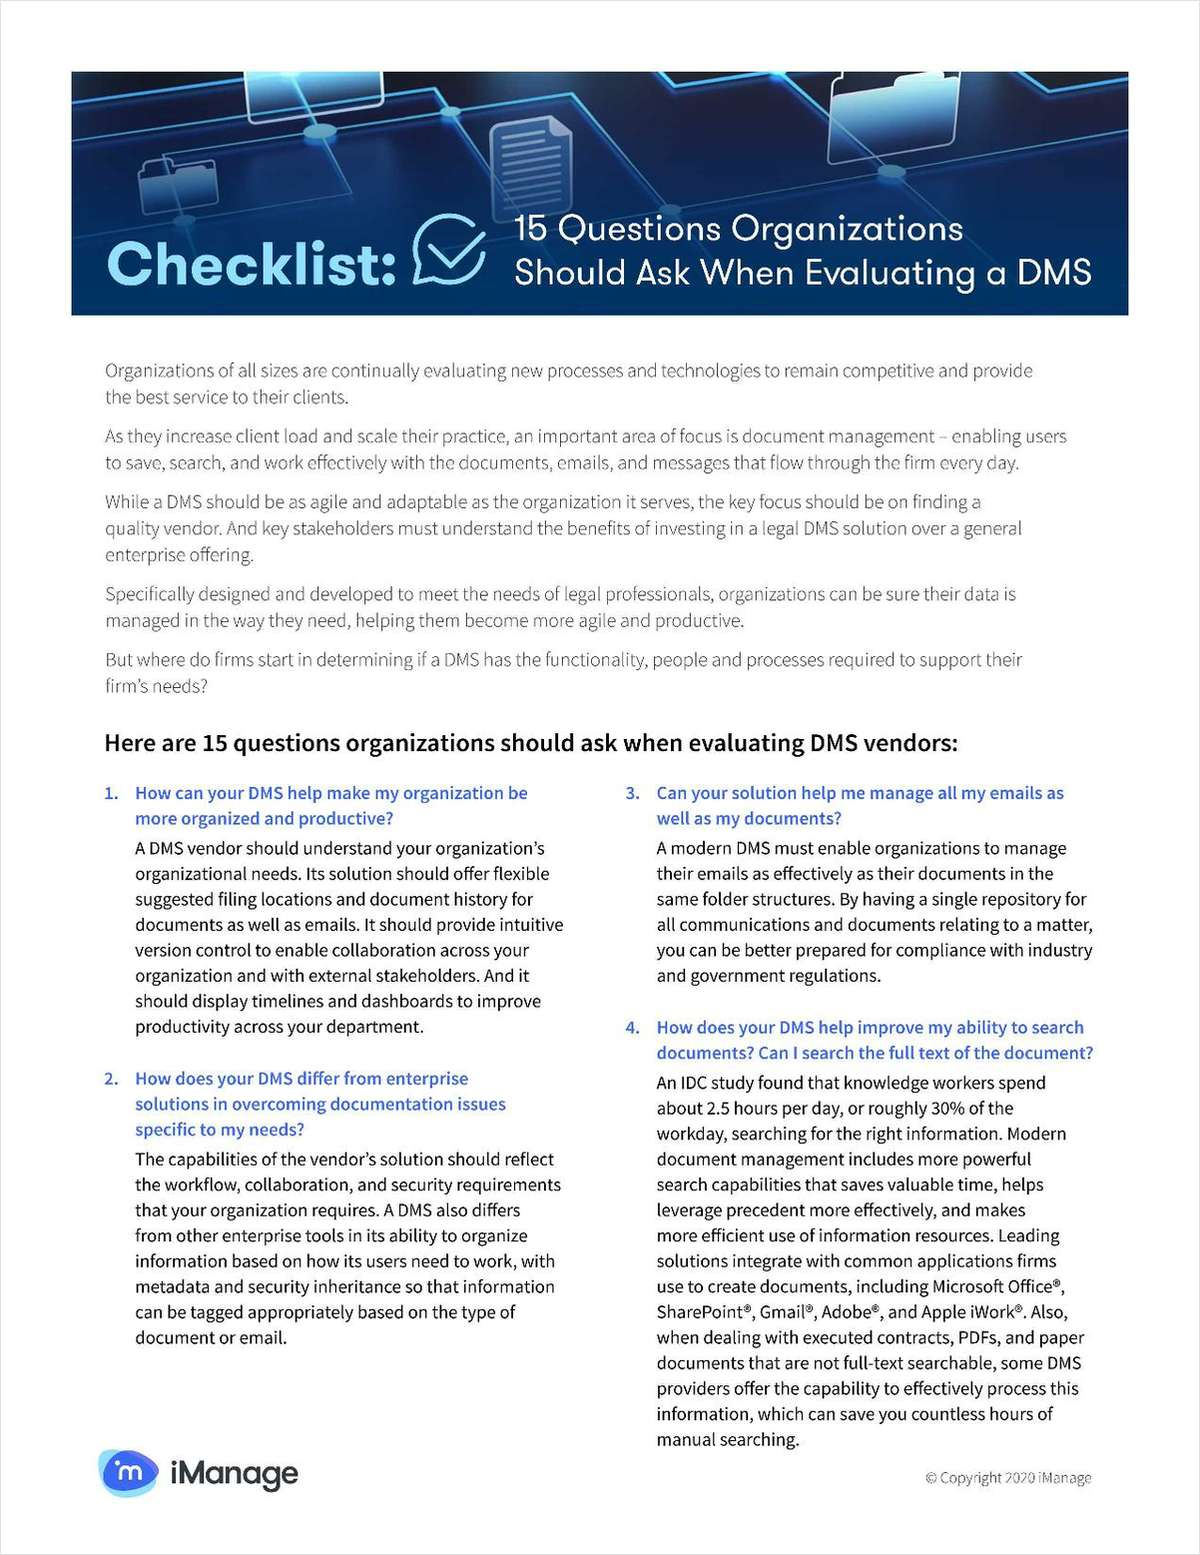 15 Questions Law Firms Should Ask When Evaluating a DMS